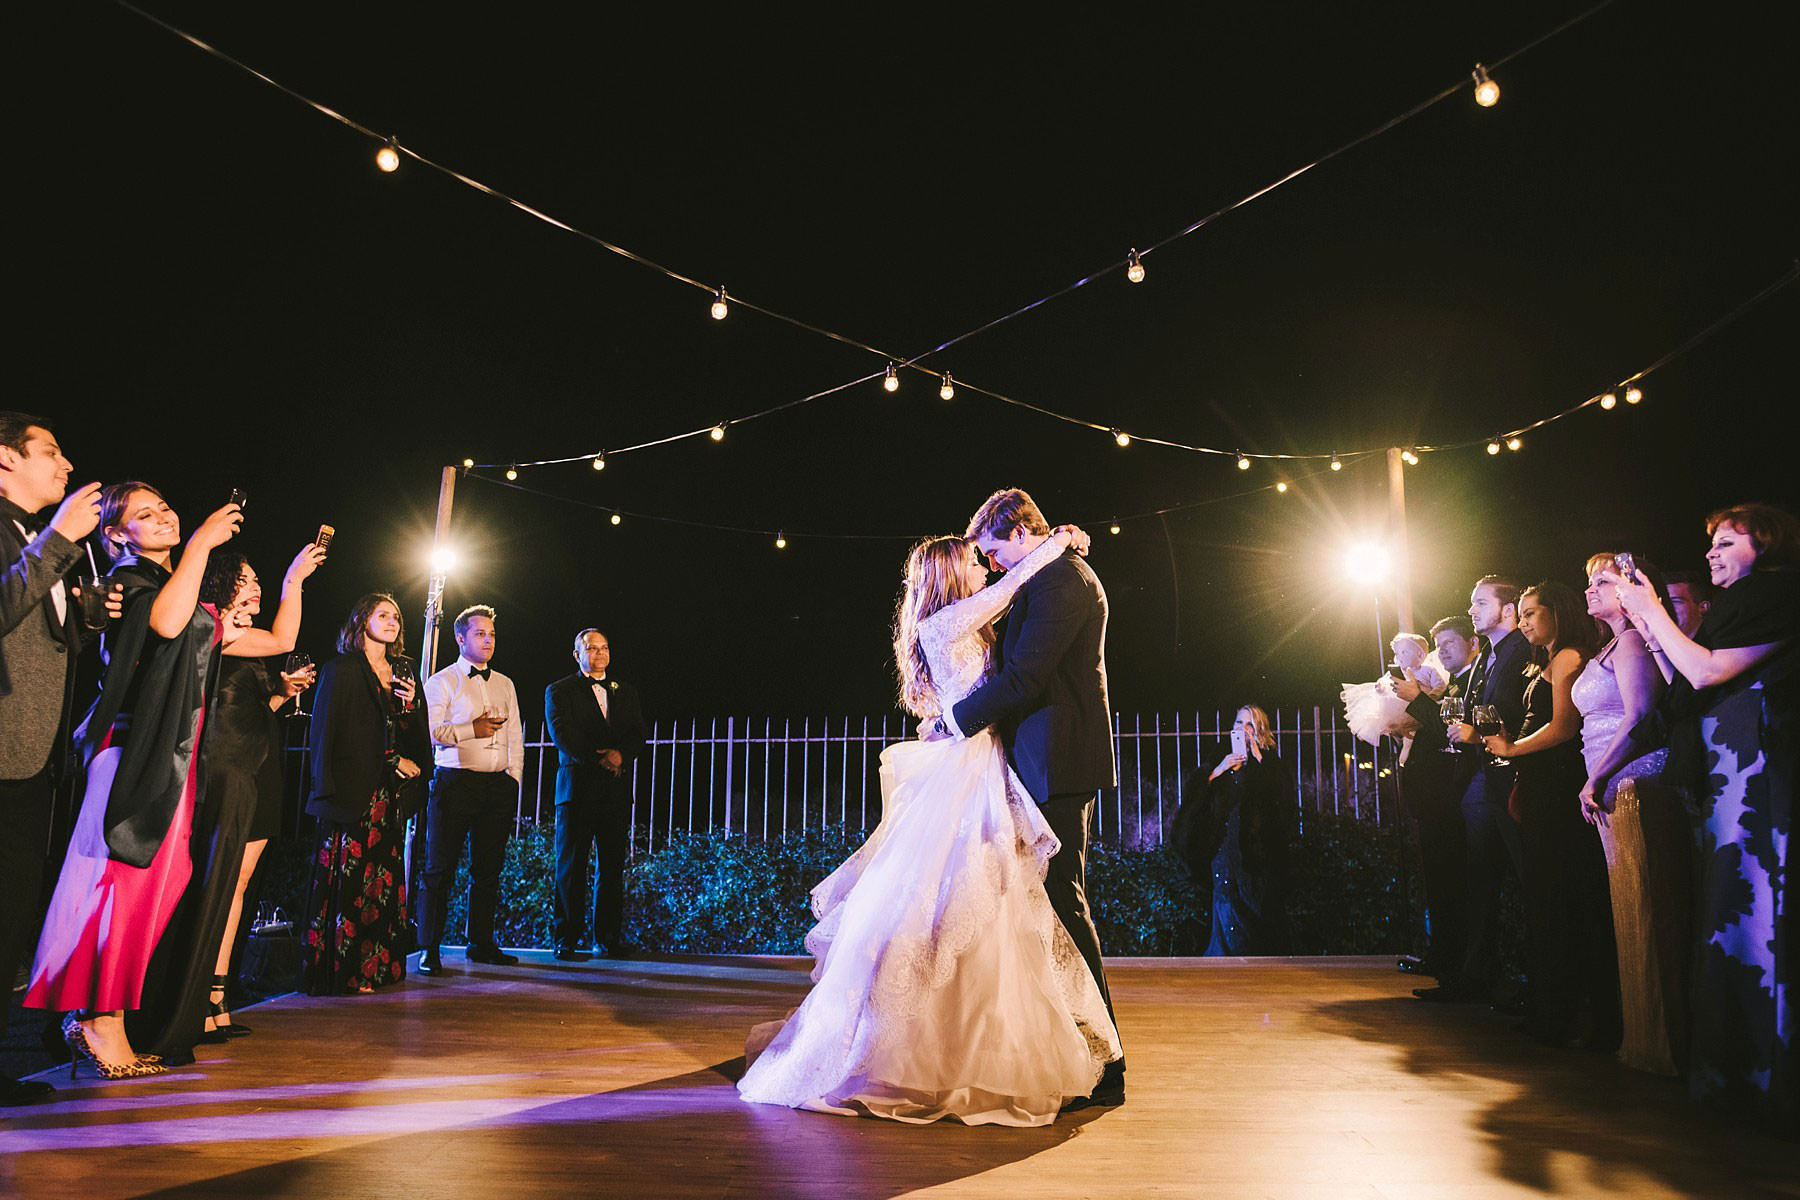 Bride and groom first dance at Villa Mangiacane for intimate destination wedding in the heart of Chianti